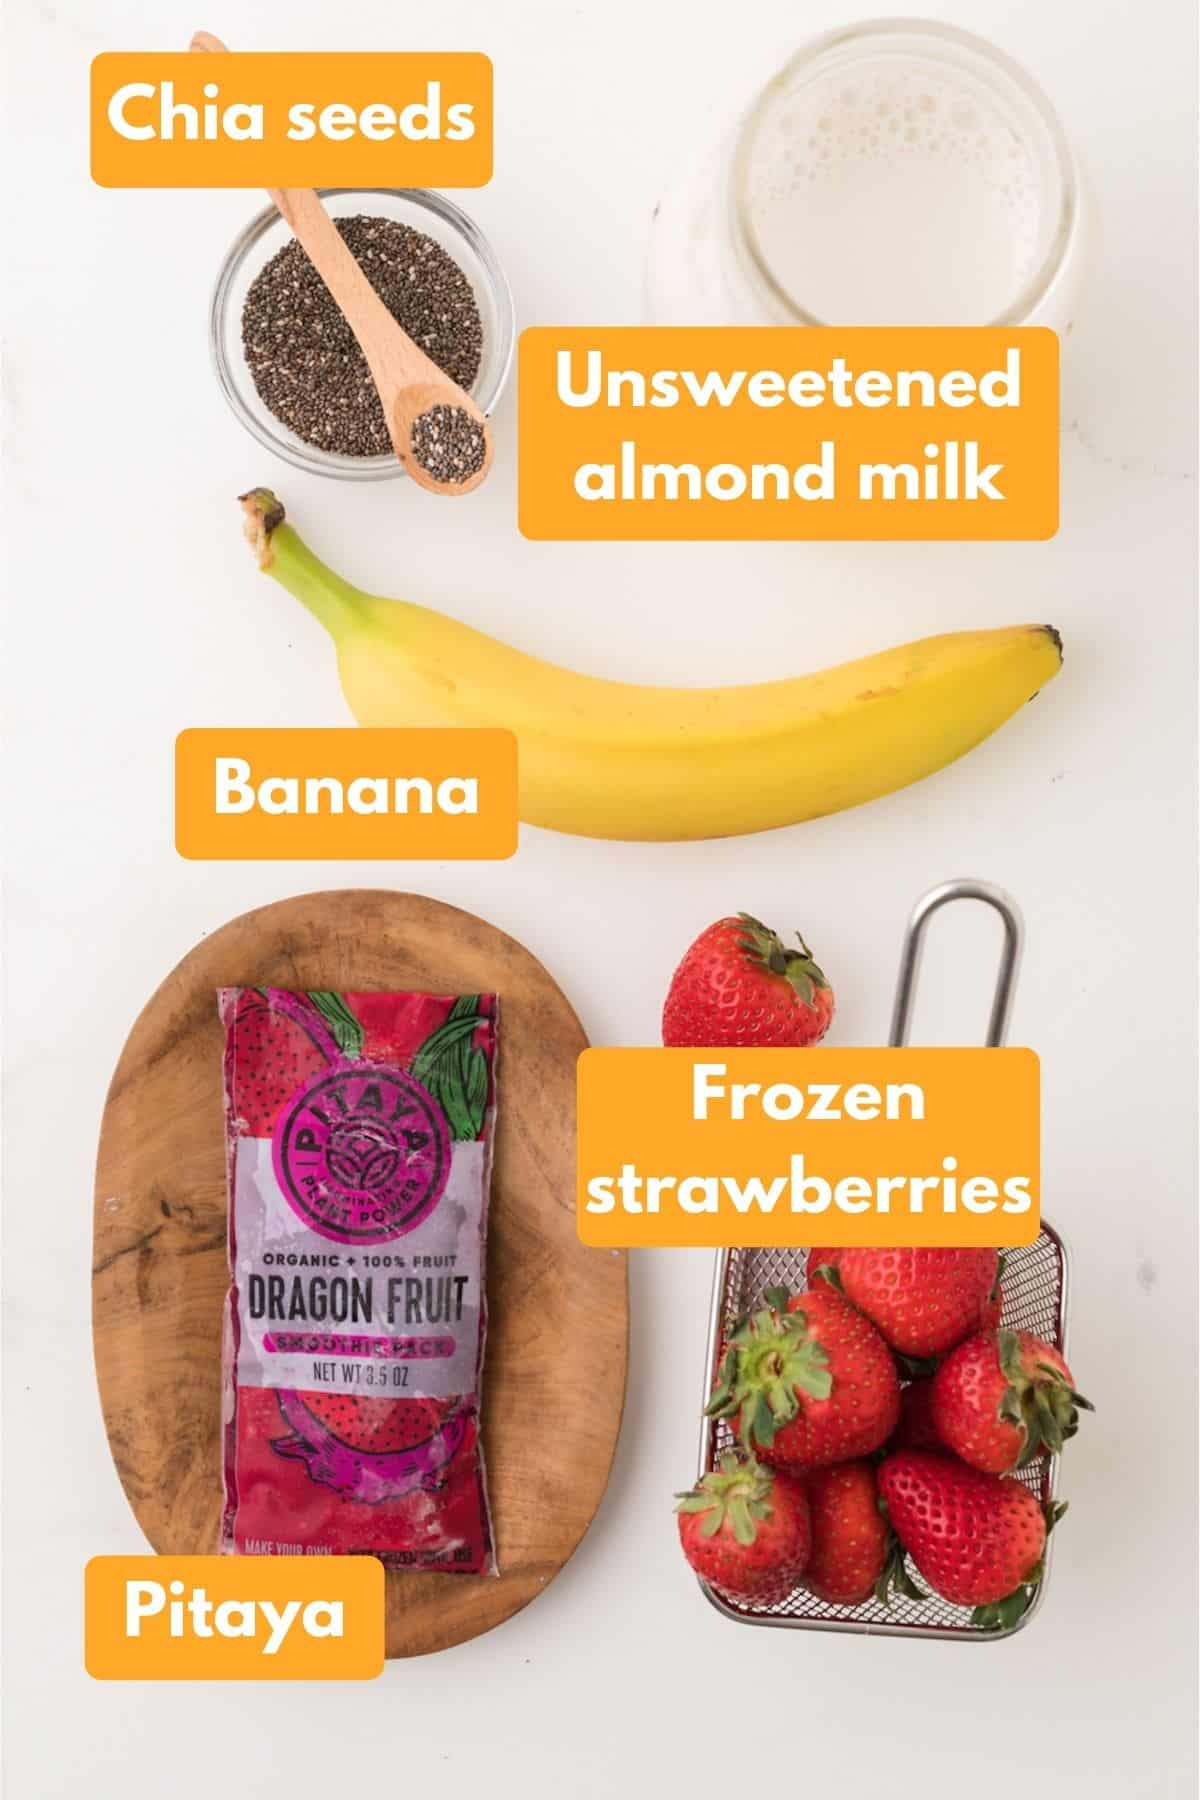 ingredients for a purple dragon fruit banana smoothie